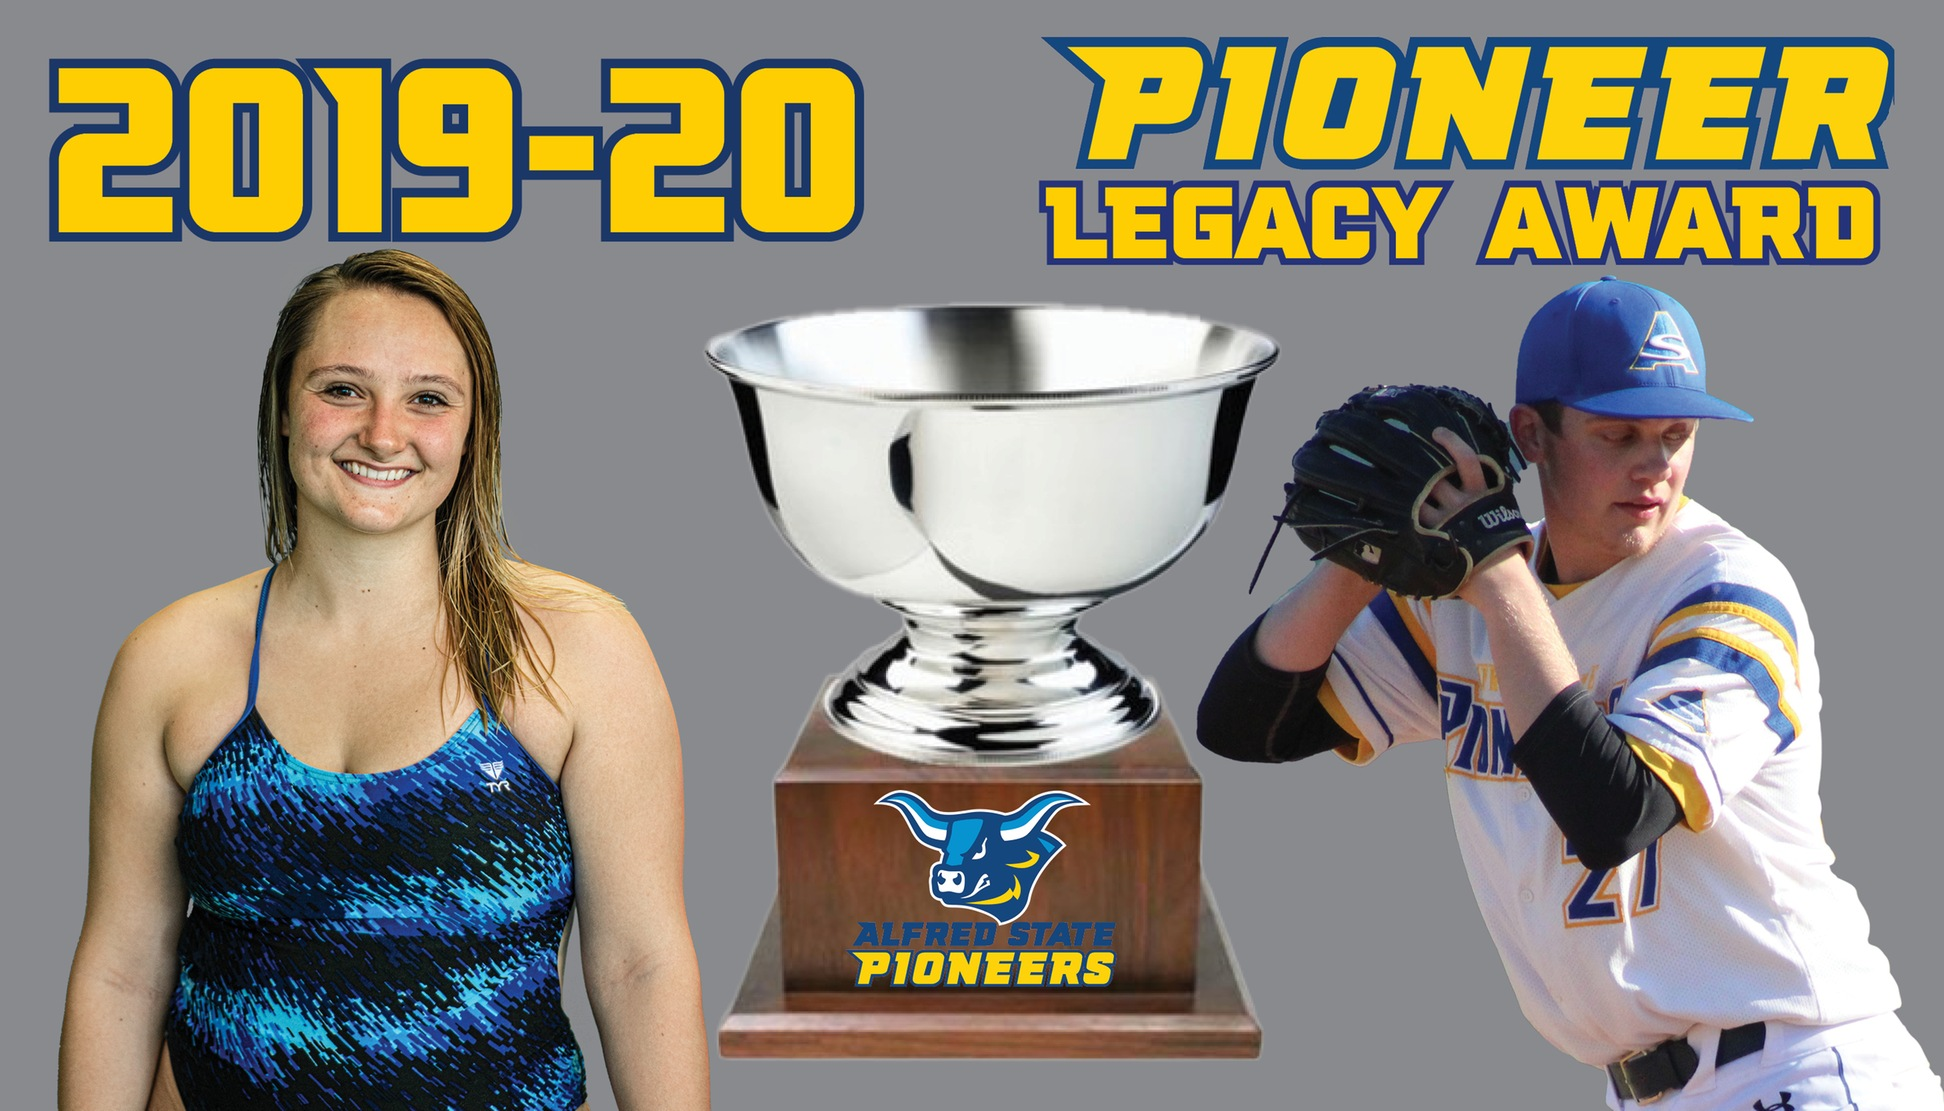 Sarah Stevens and Jarrod Deaton named the recipients of the 2019-20 Pioneer Legacy Award